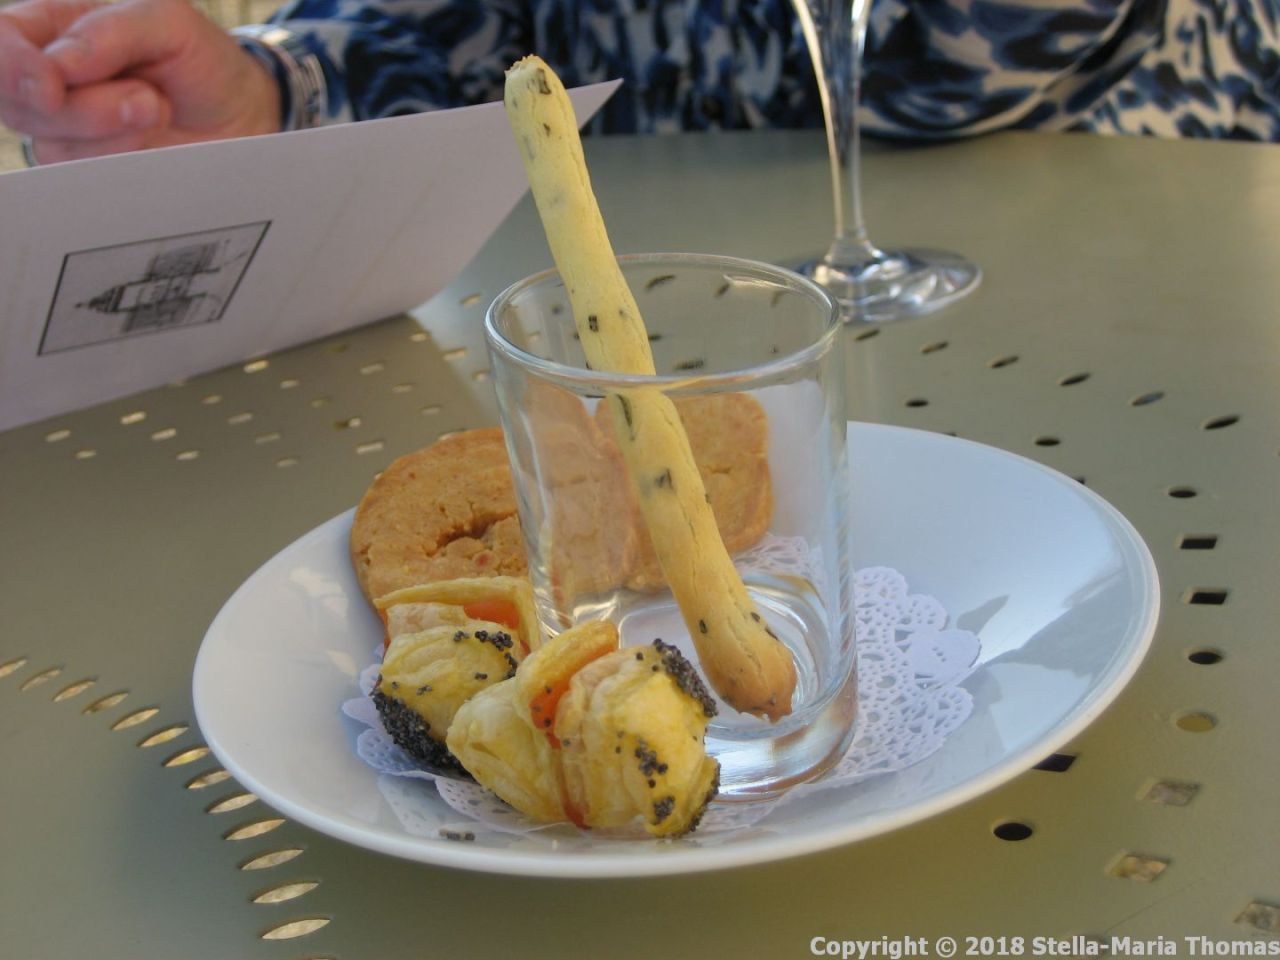 CHATEAU D'ETOGES, BREAD STICKS AND CANAPES 001